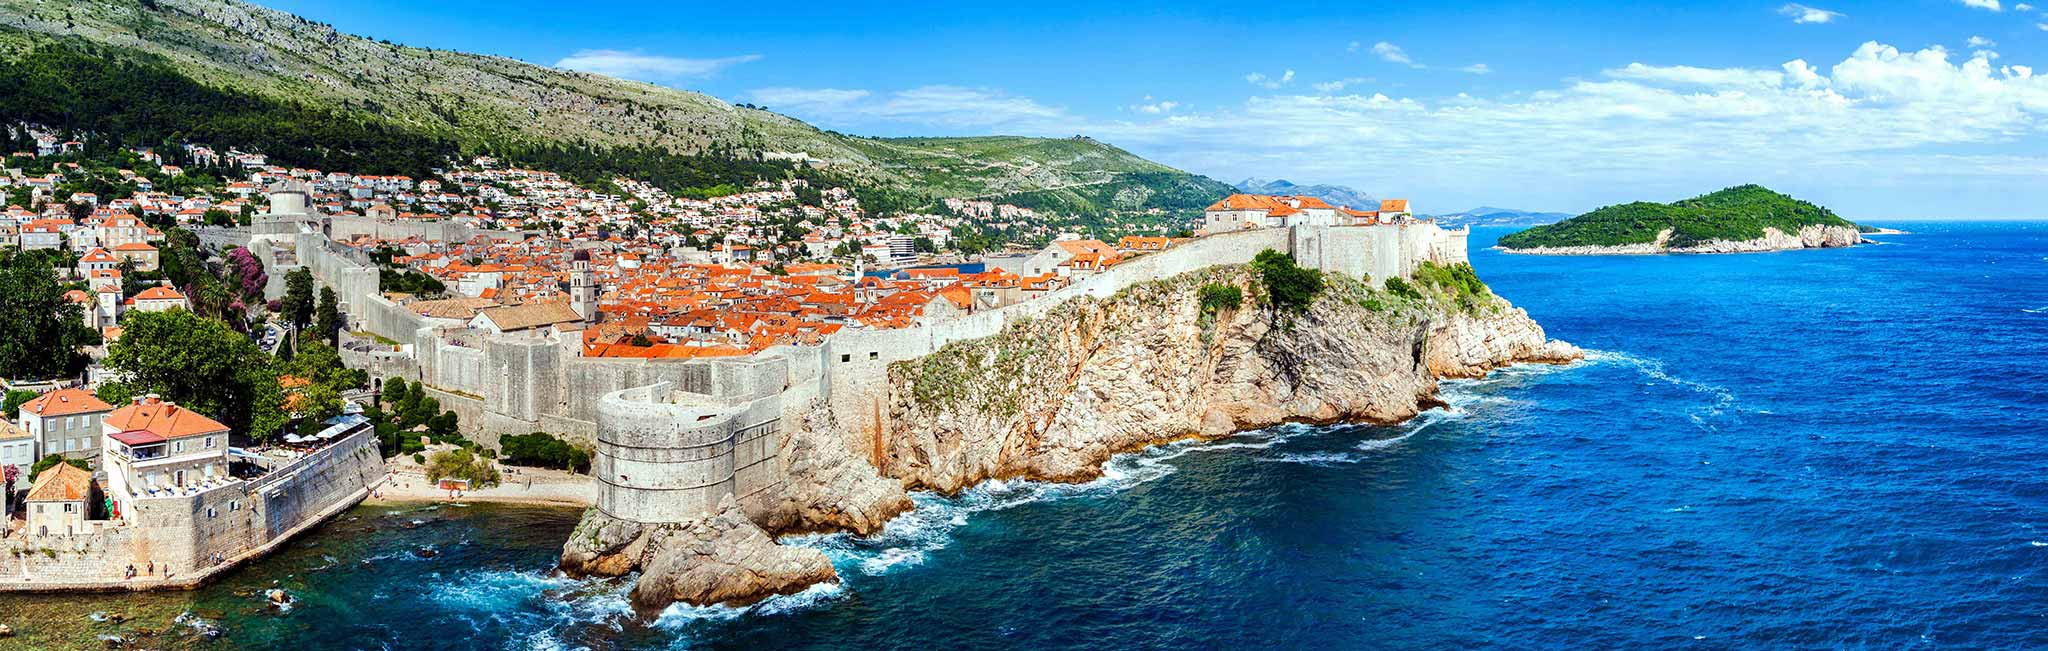 Croatia Tour of the Dalmatian Coast